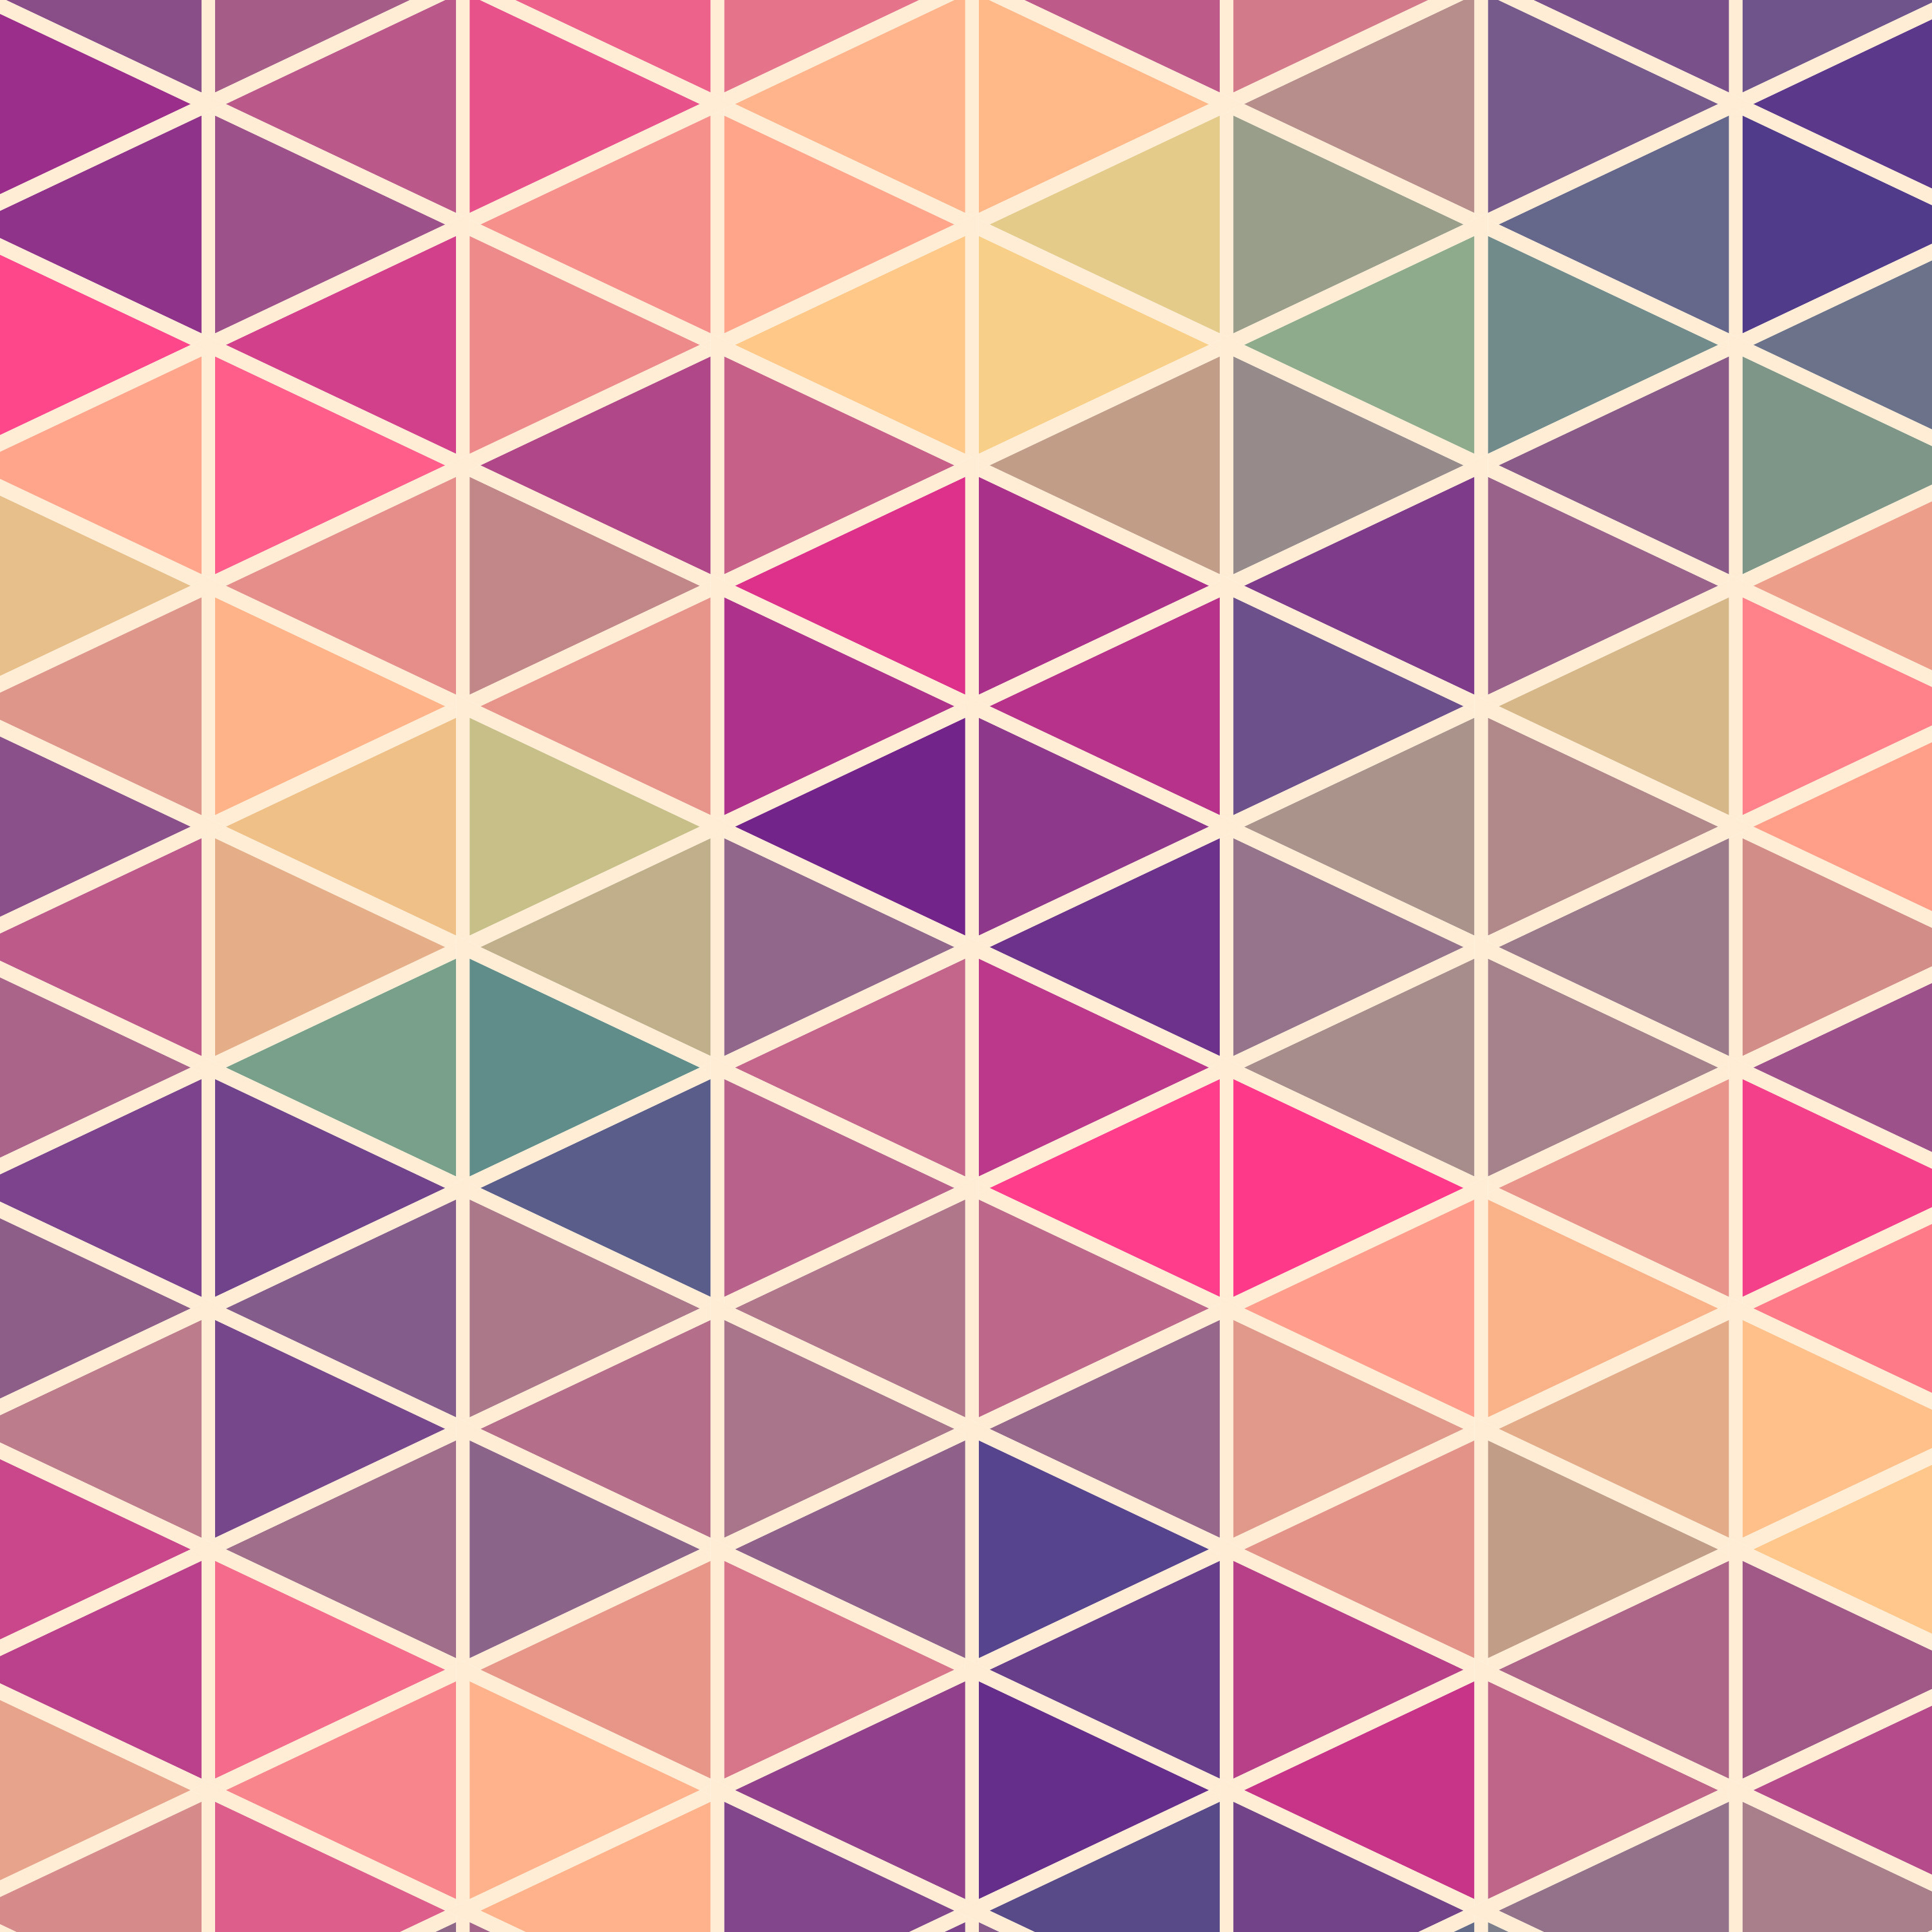 Flat design backgrounds how to make the hottest design Geometric patterns